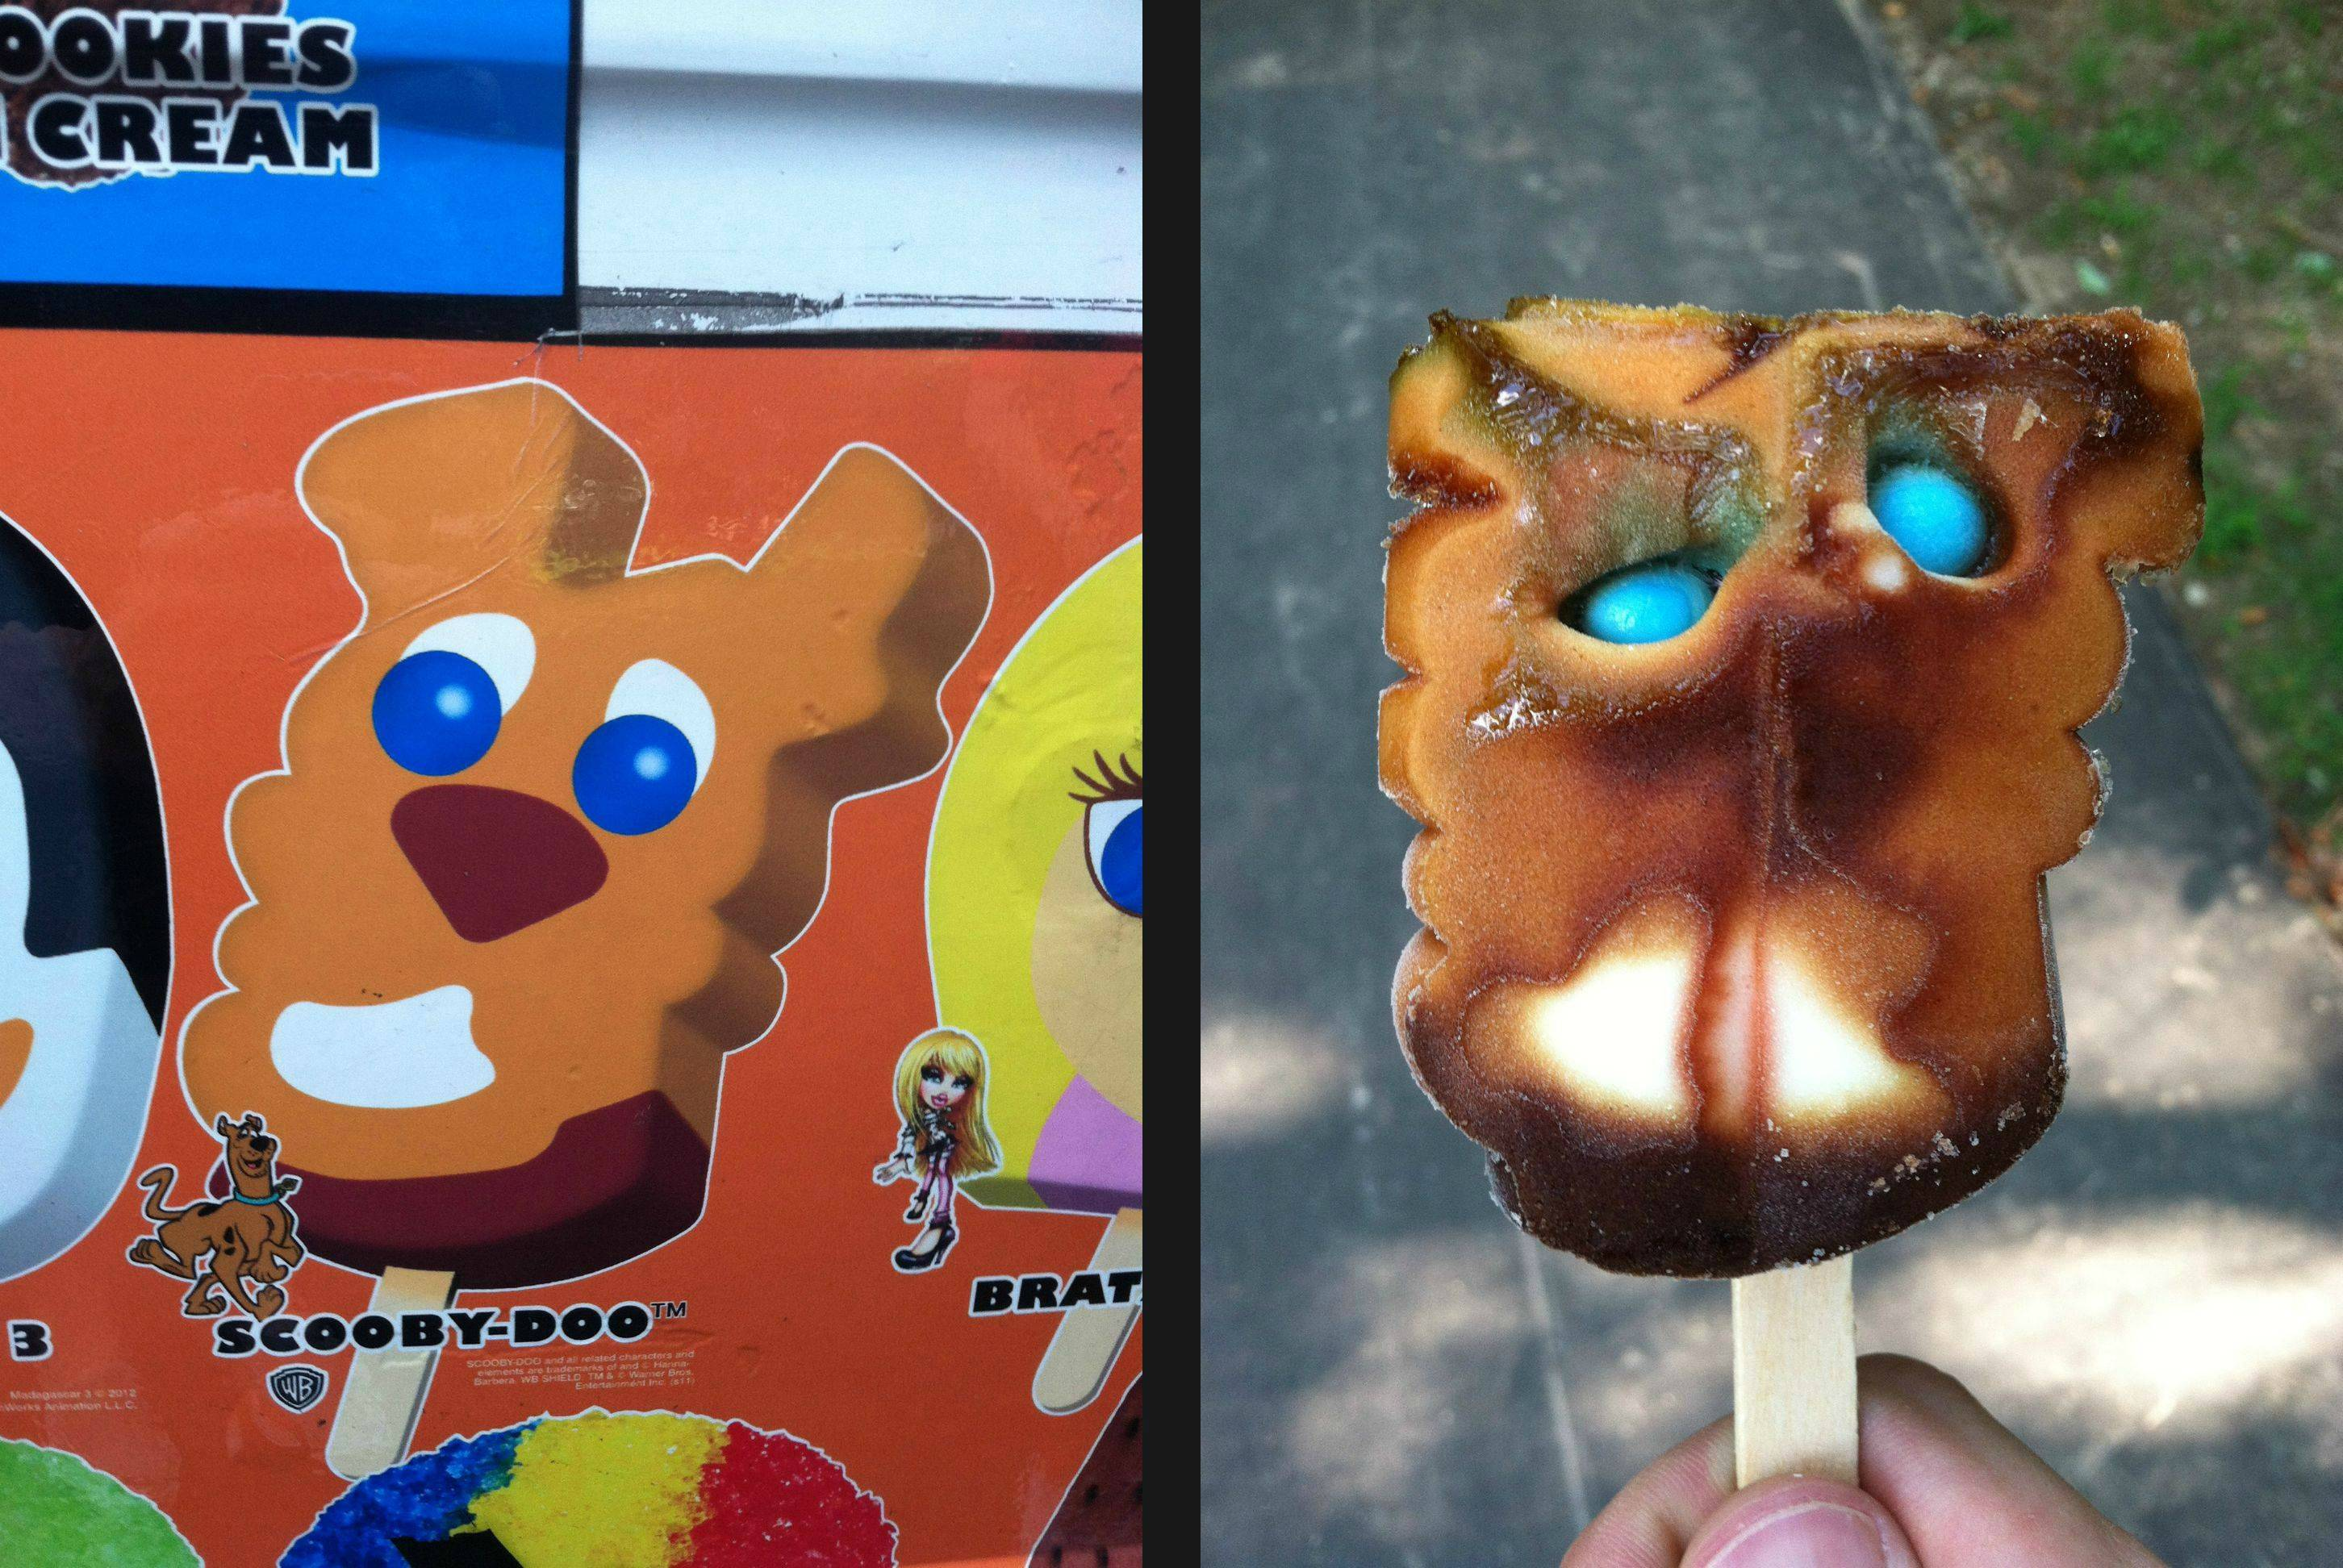 scooby-doo popsicle character